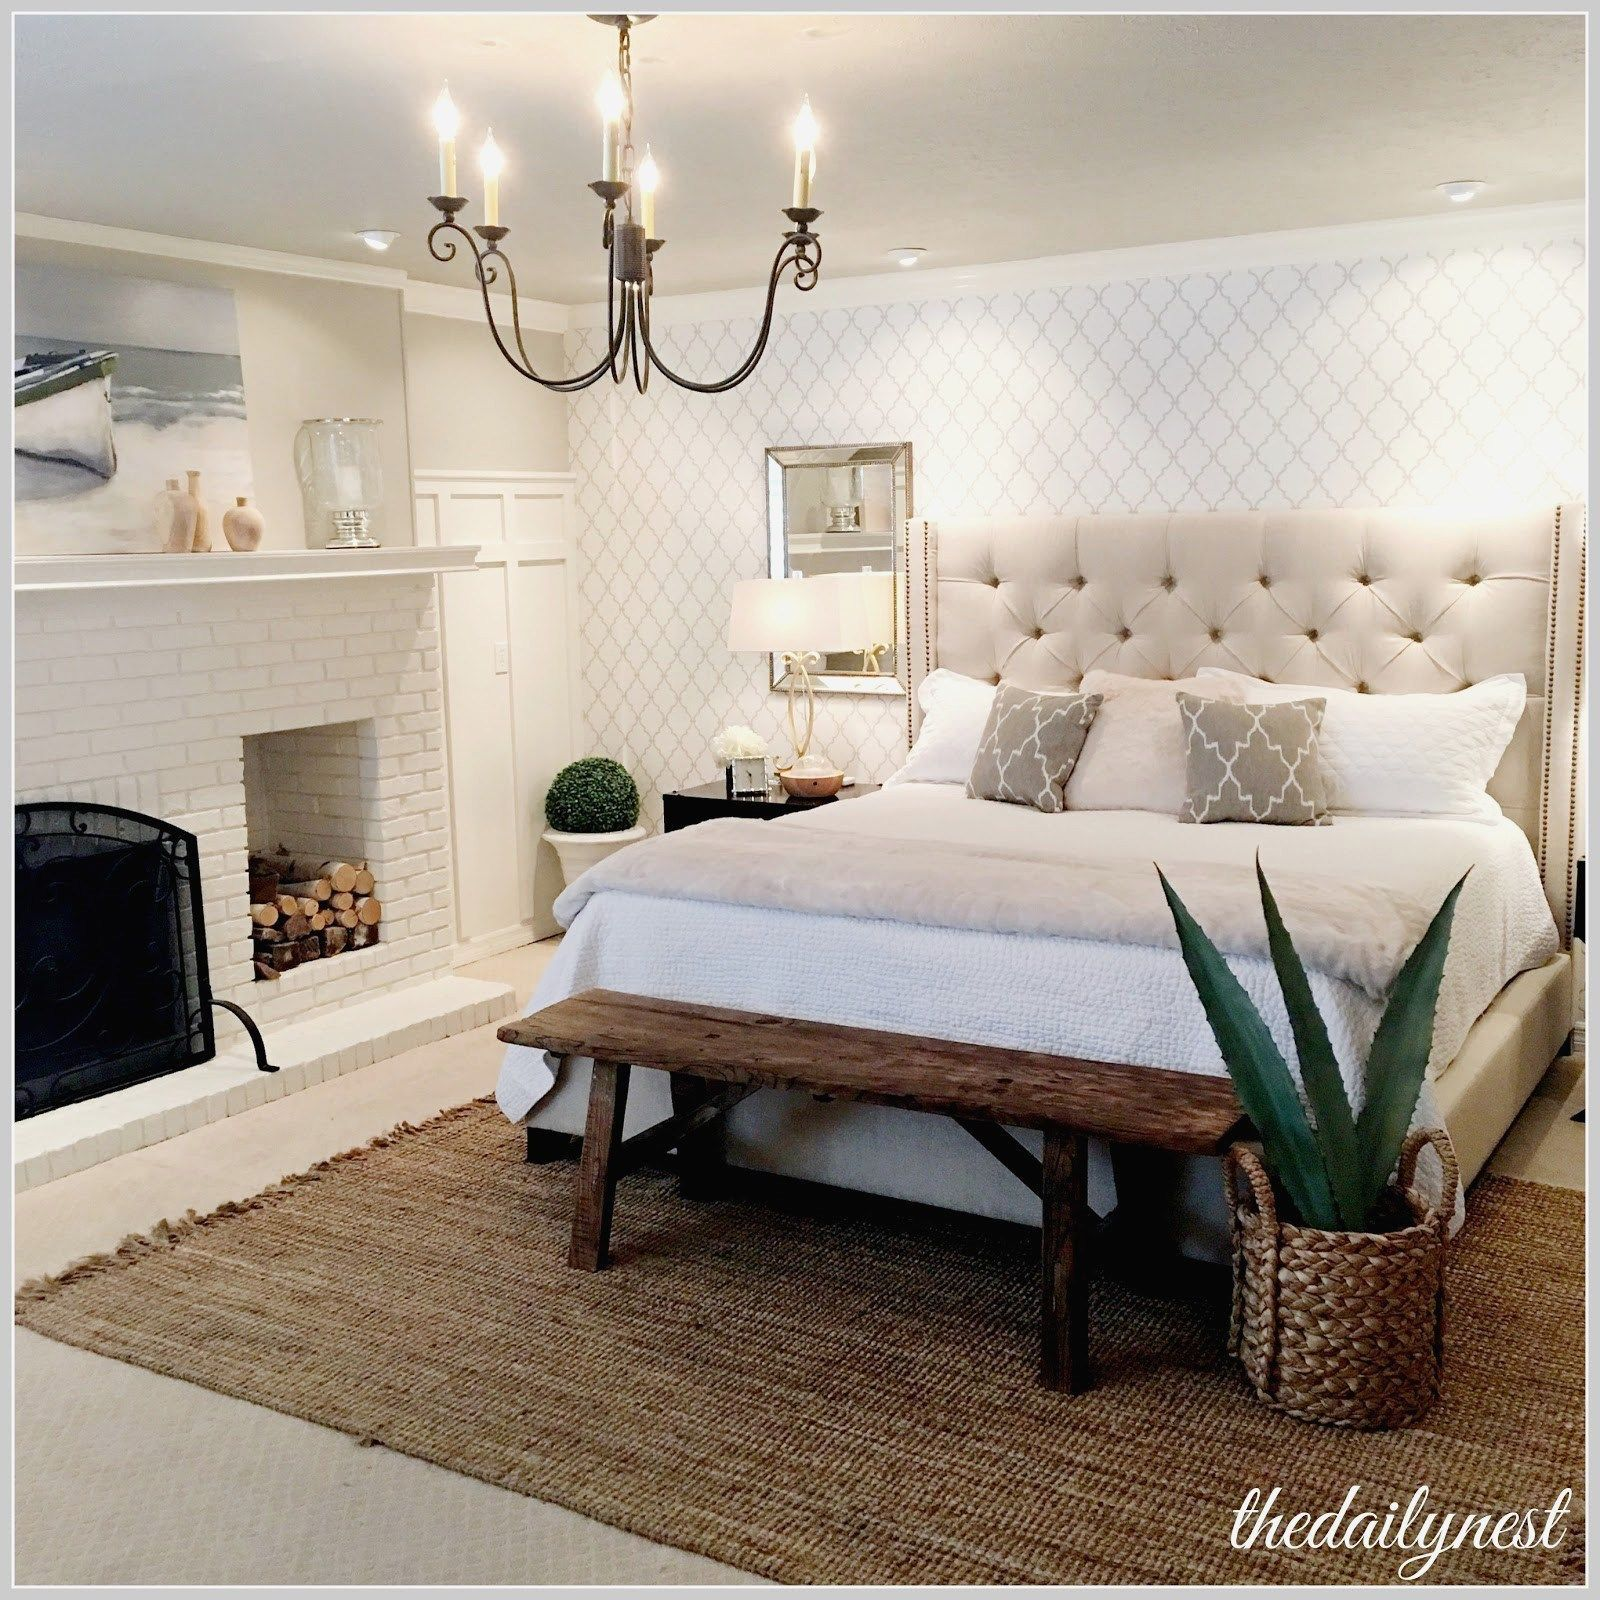 Enhance Your Senses With Luxury Home Decor Pottery Barn Bedrooms